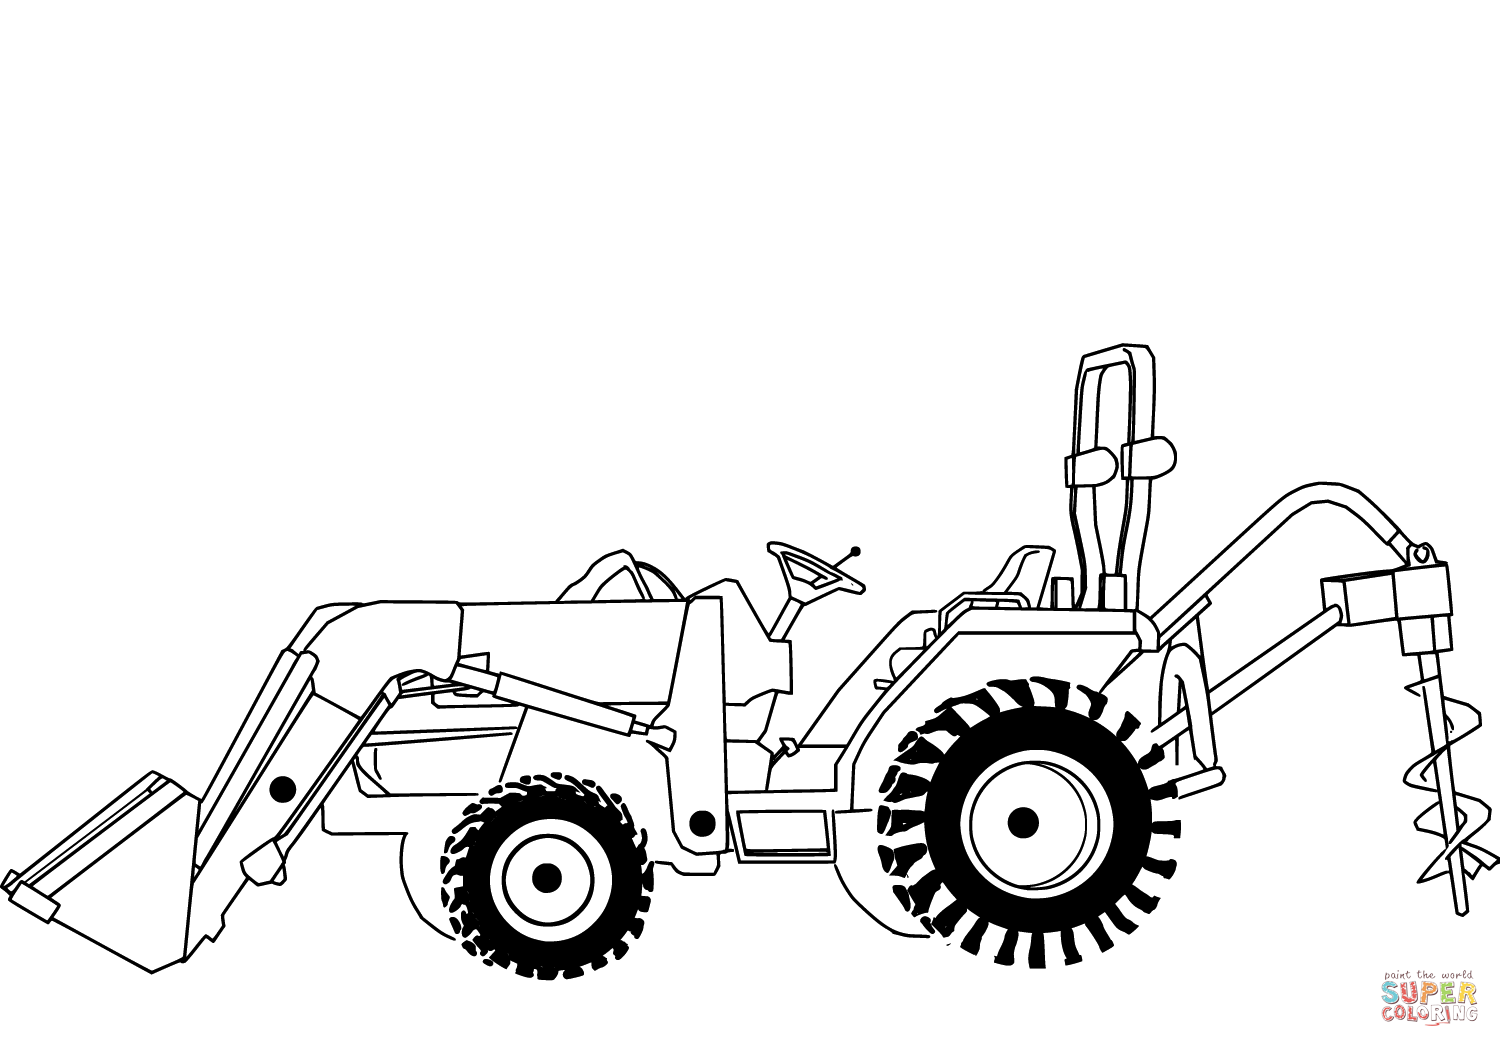 Printable Coloring Page For Kids Of A Baby Lamb Drag Car Coloring Pages 20 Car Coloring Page